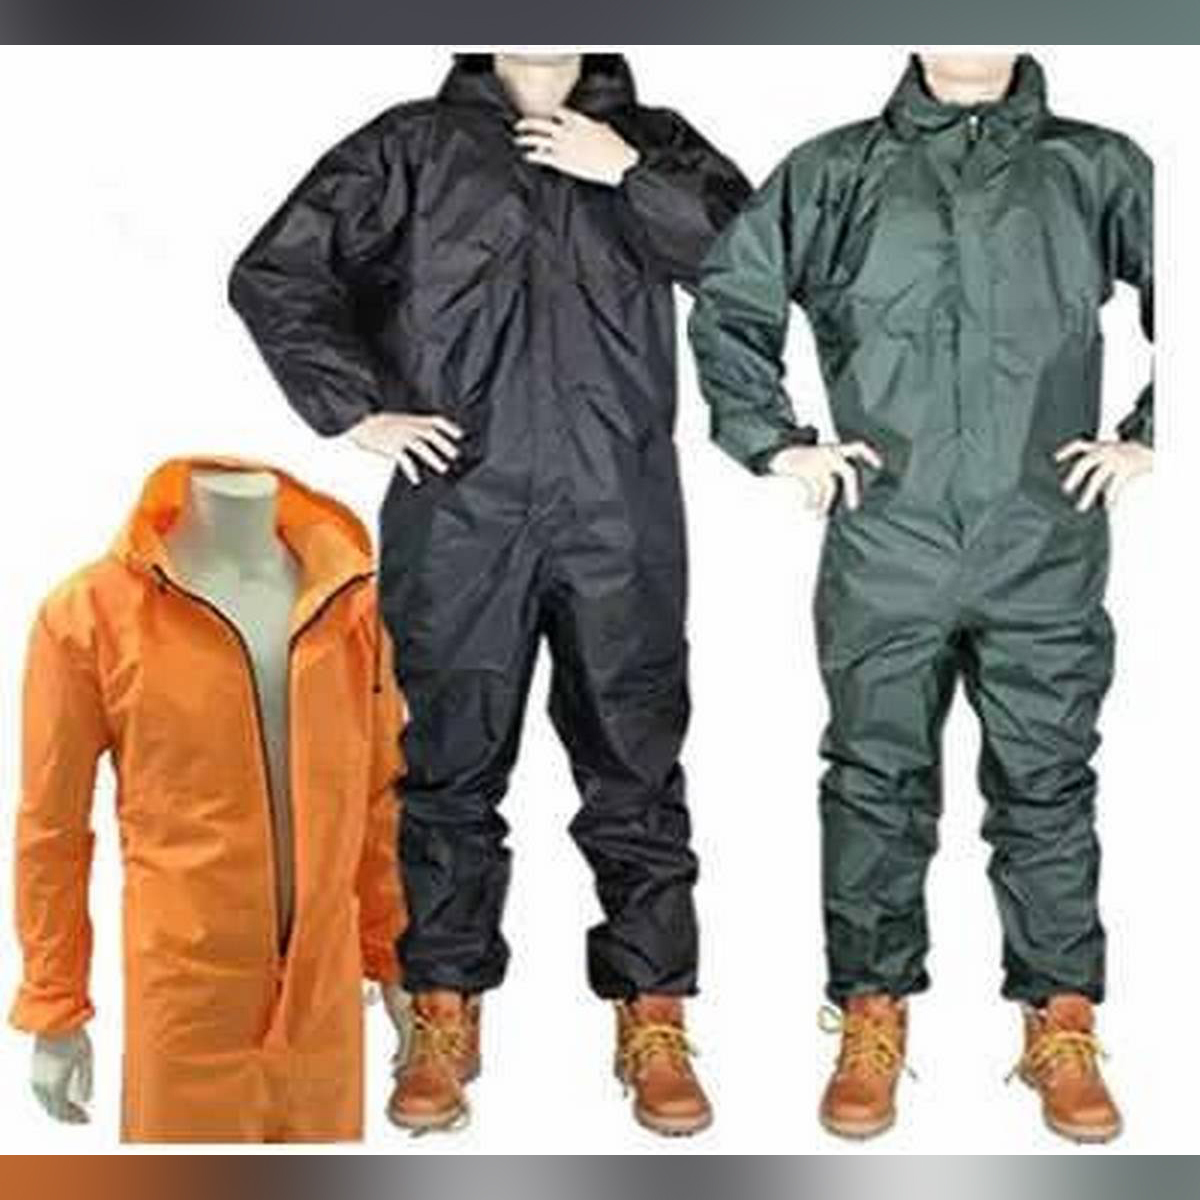 Waterproof Fashion Conjoined Full Body Over Rain Coat Suit and oil proof dust proof for outdoor activities